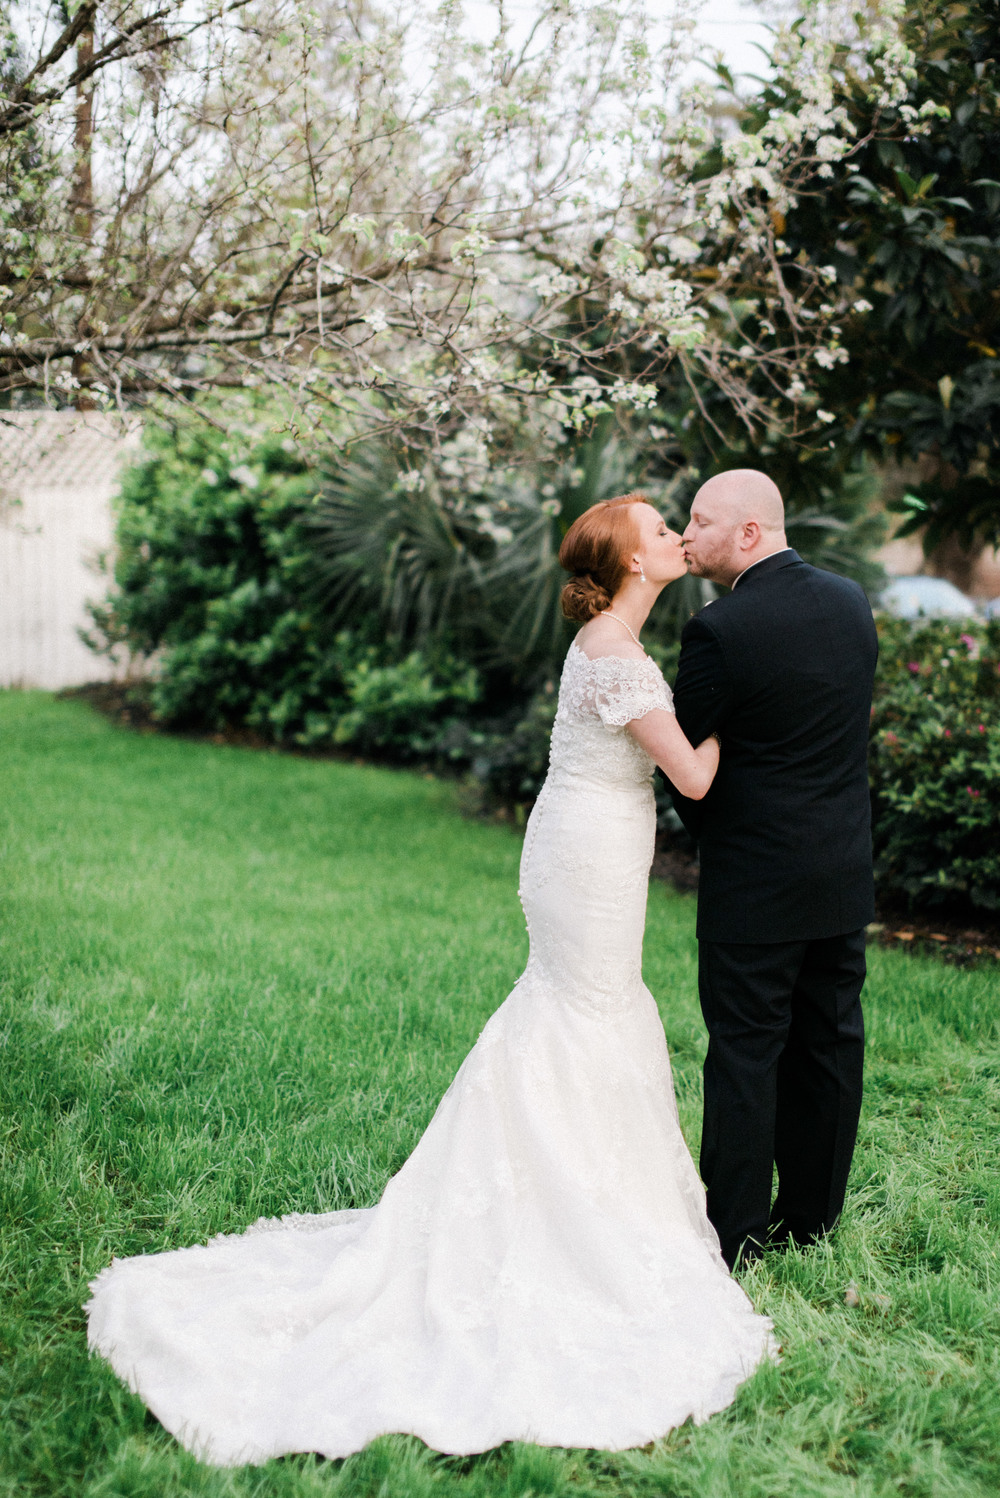 dana fernandez photography houston film wedding photographer destination heather's glen texas-16.jpg